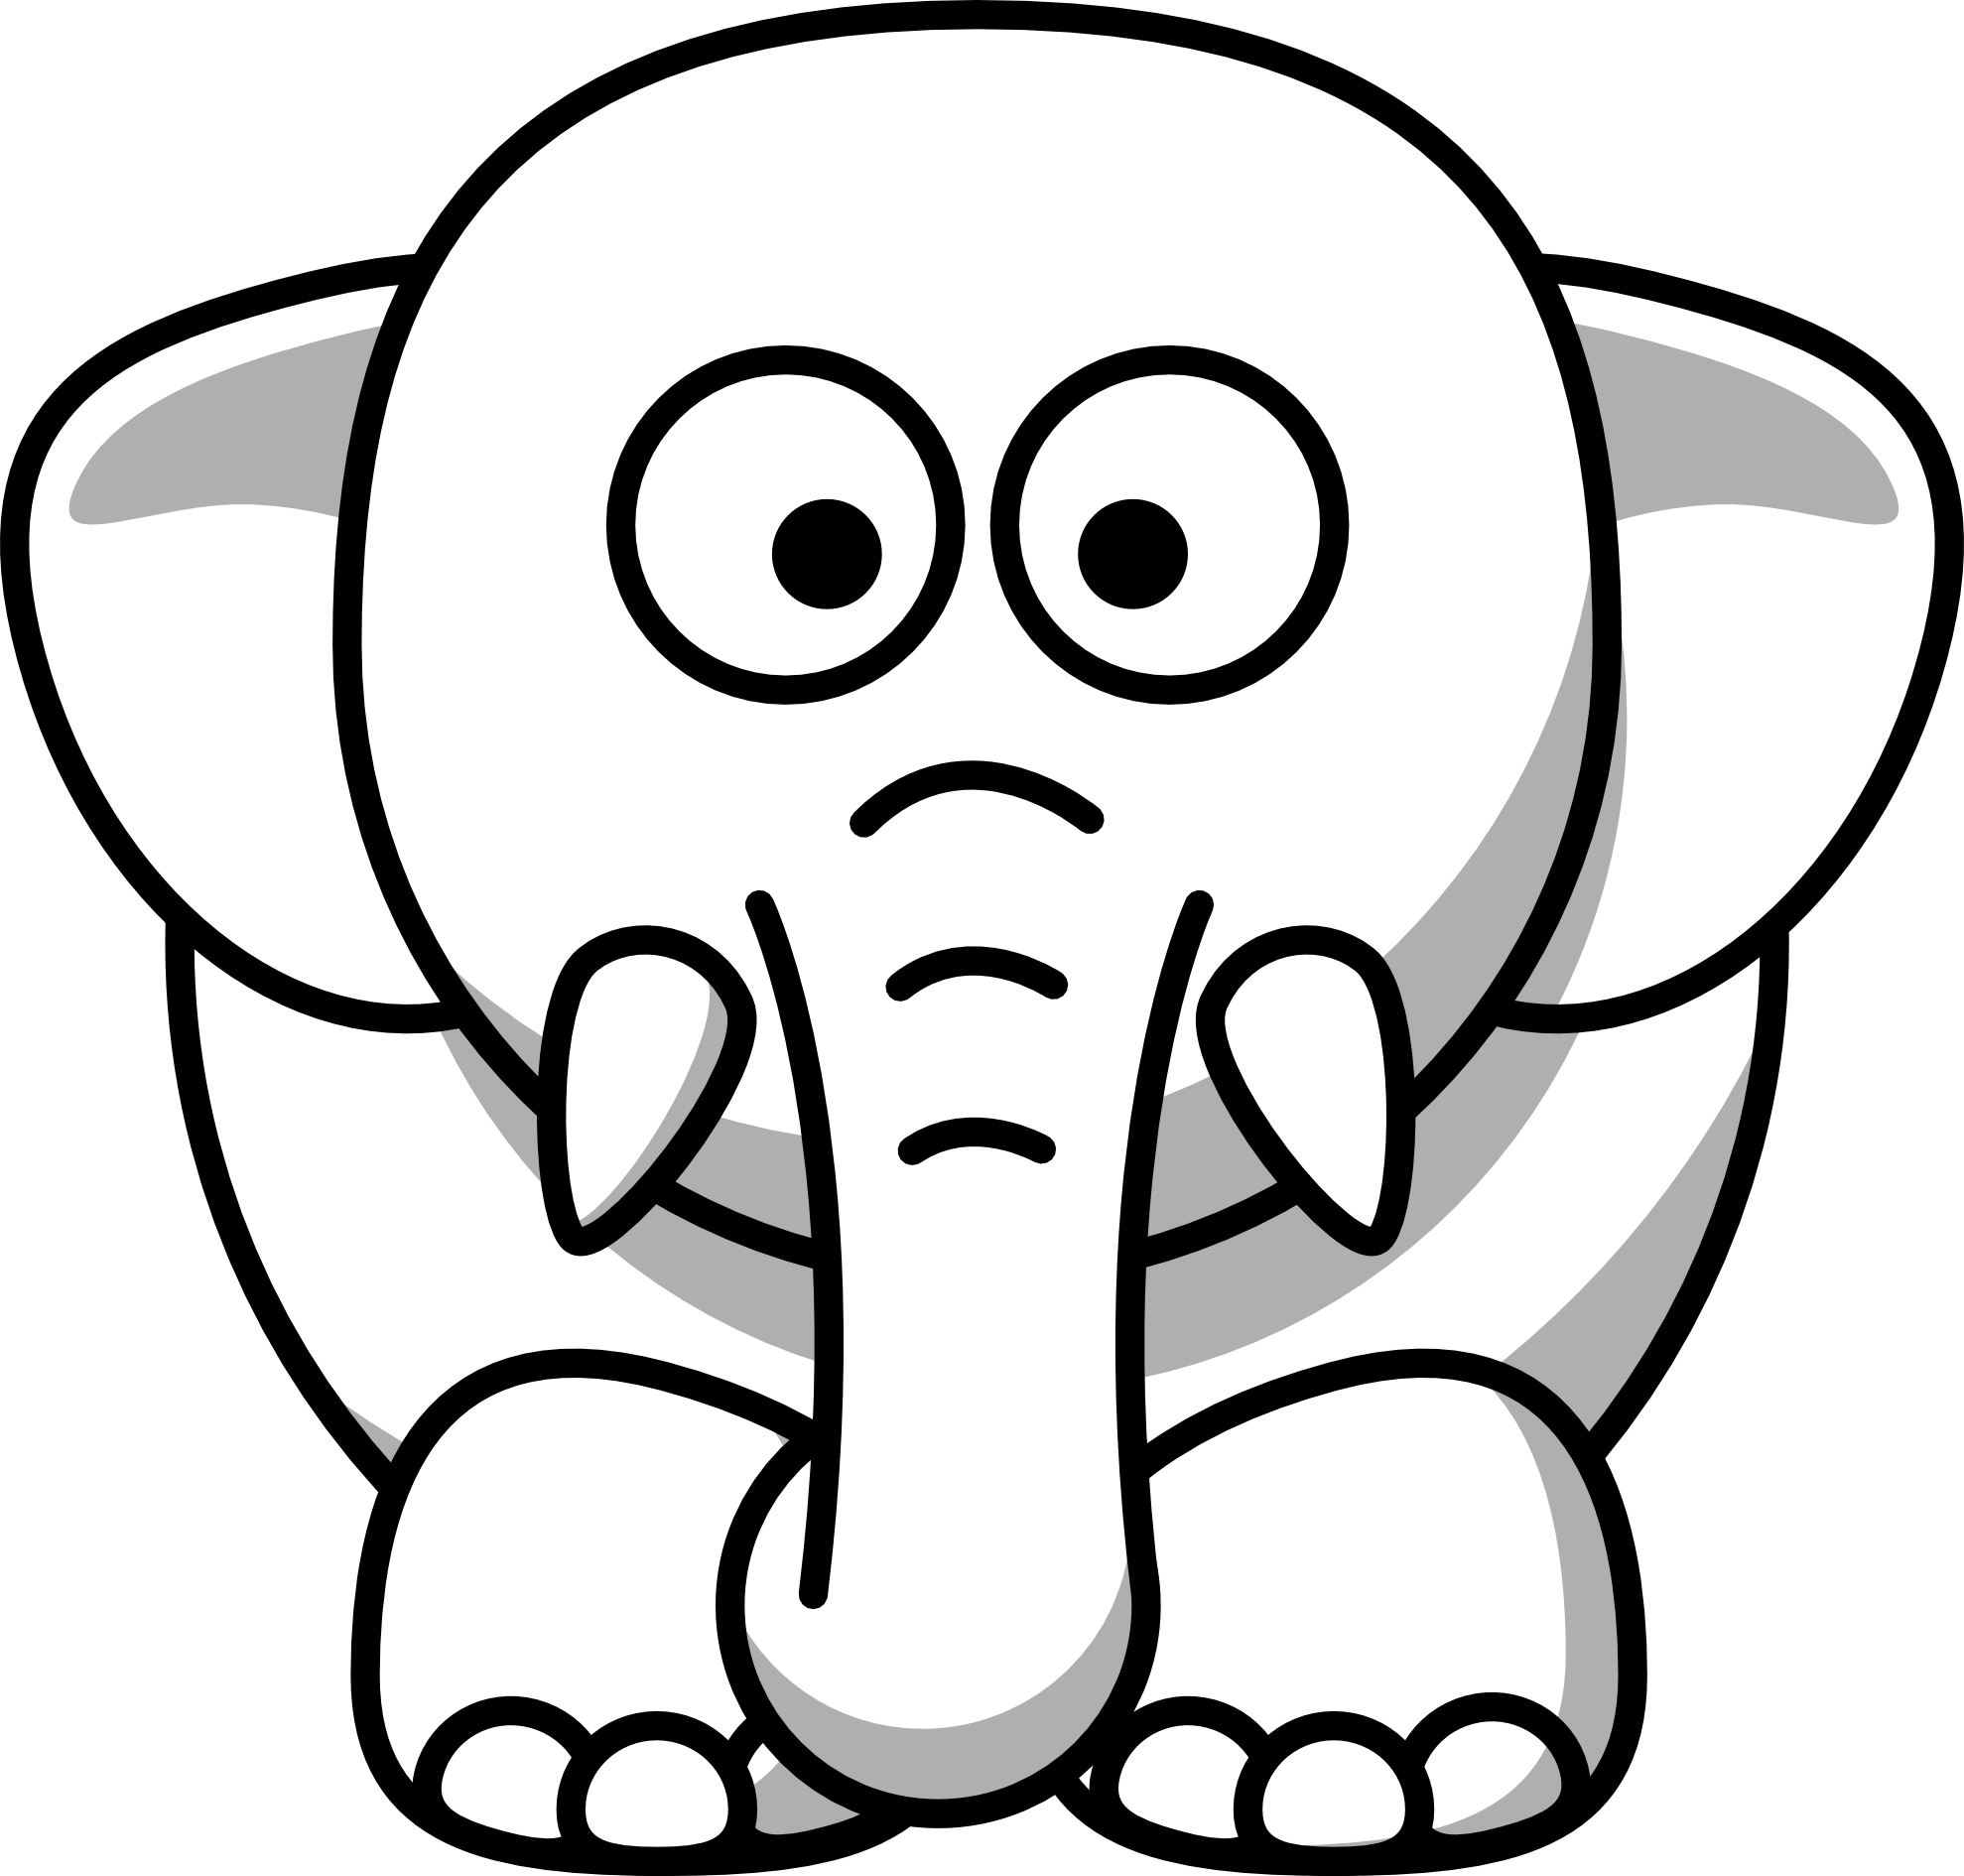 Elephants Face Drawing at GetDrawings.com   Free for personal use ...